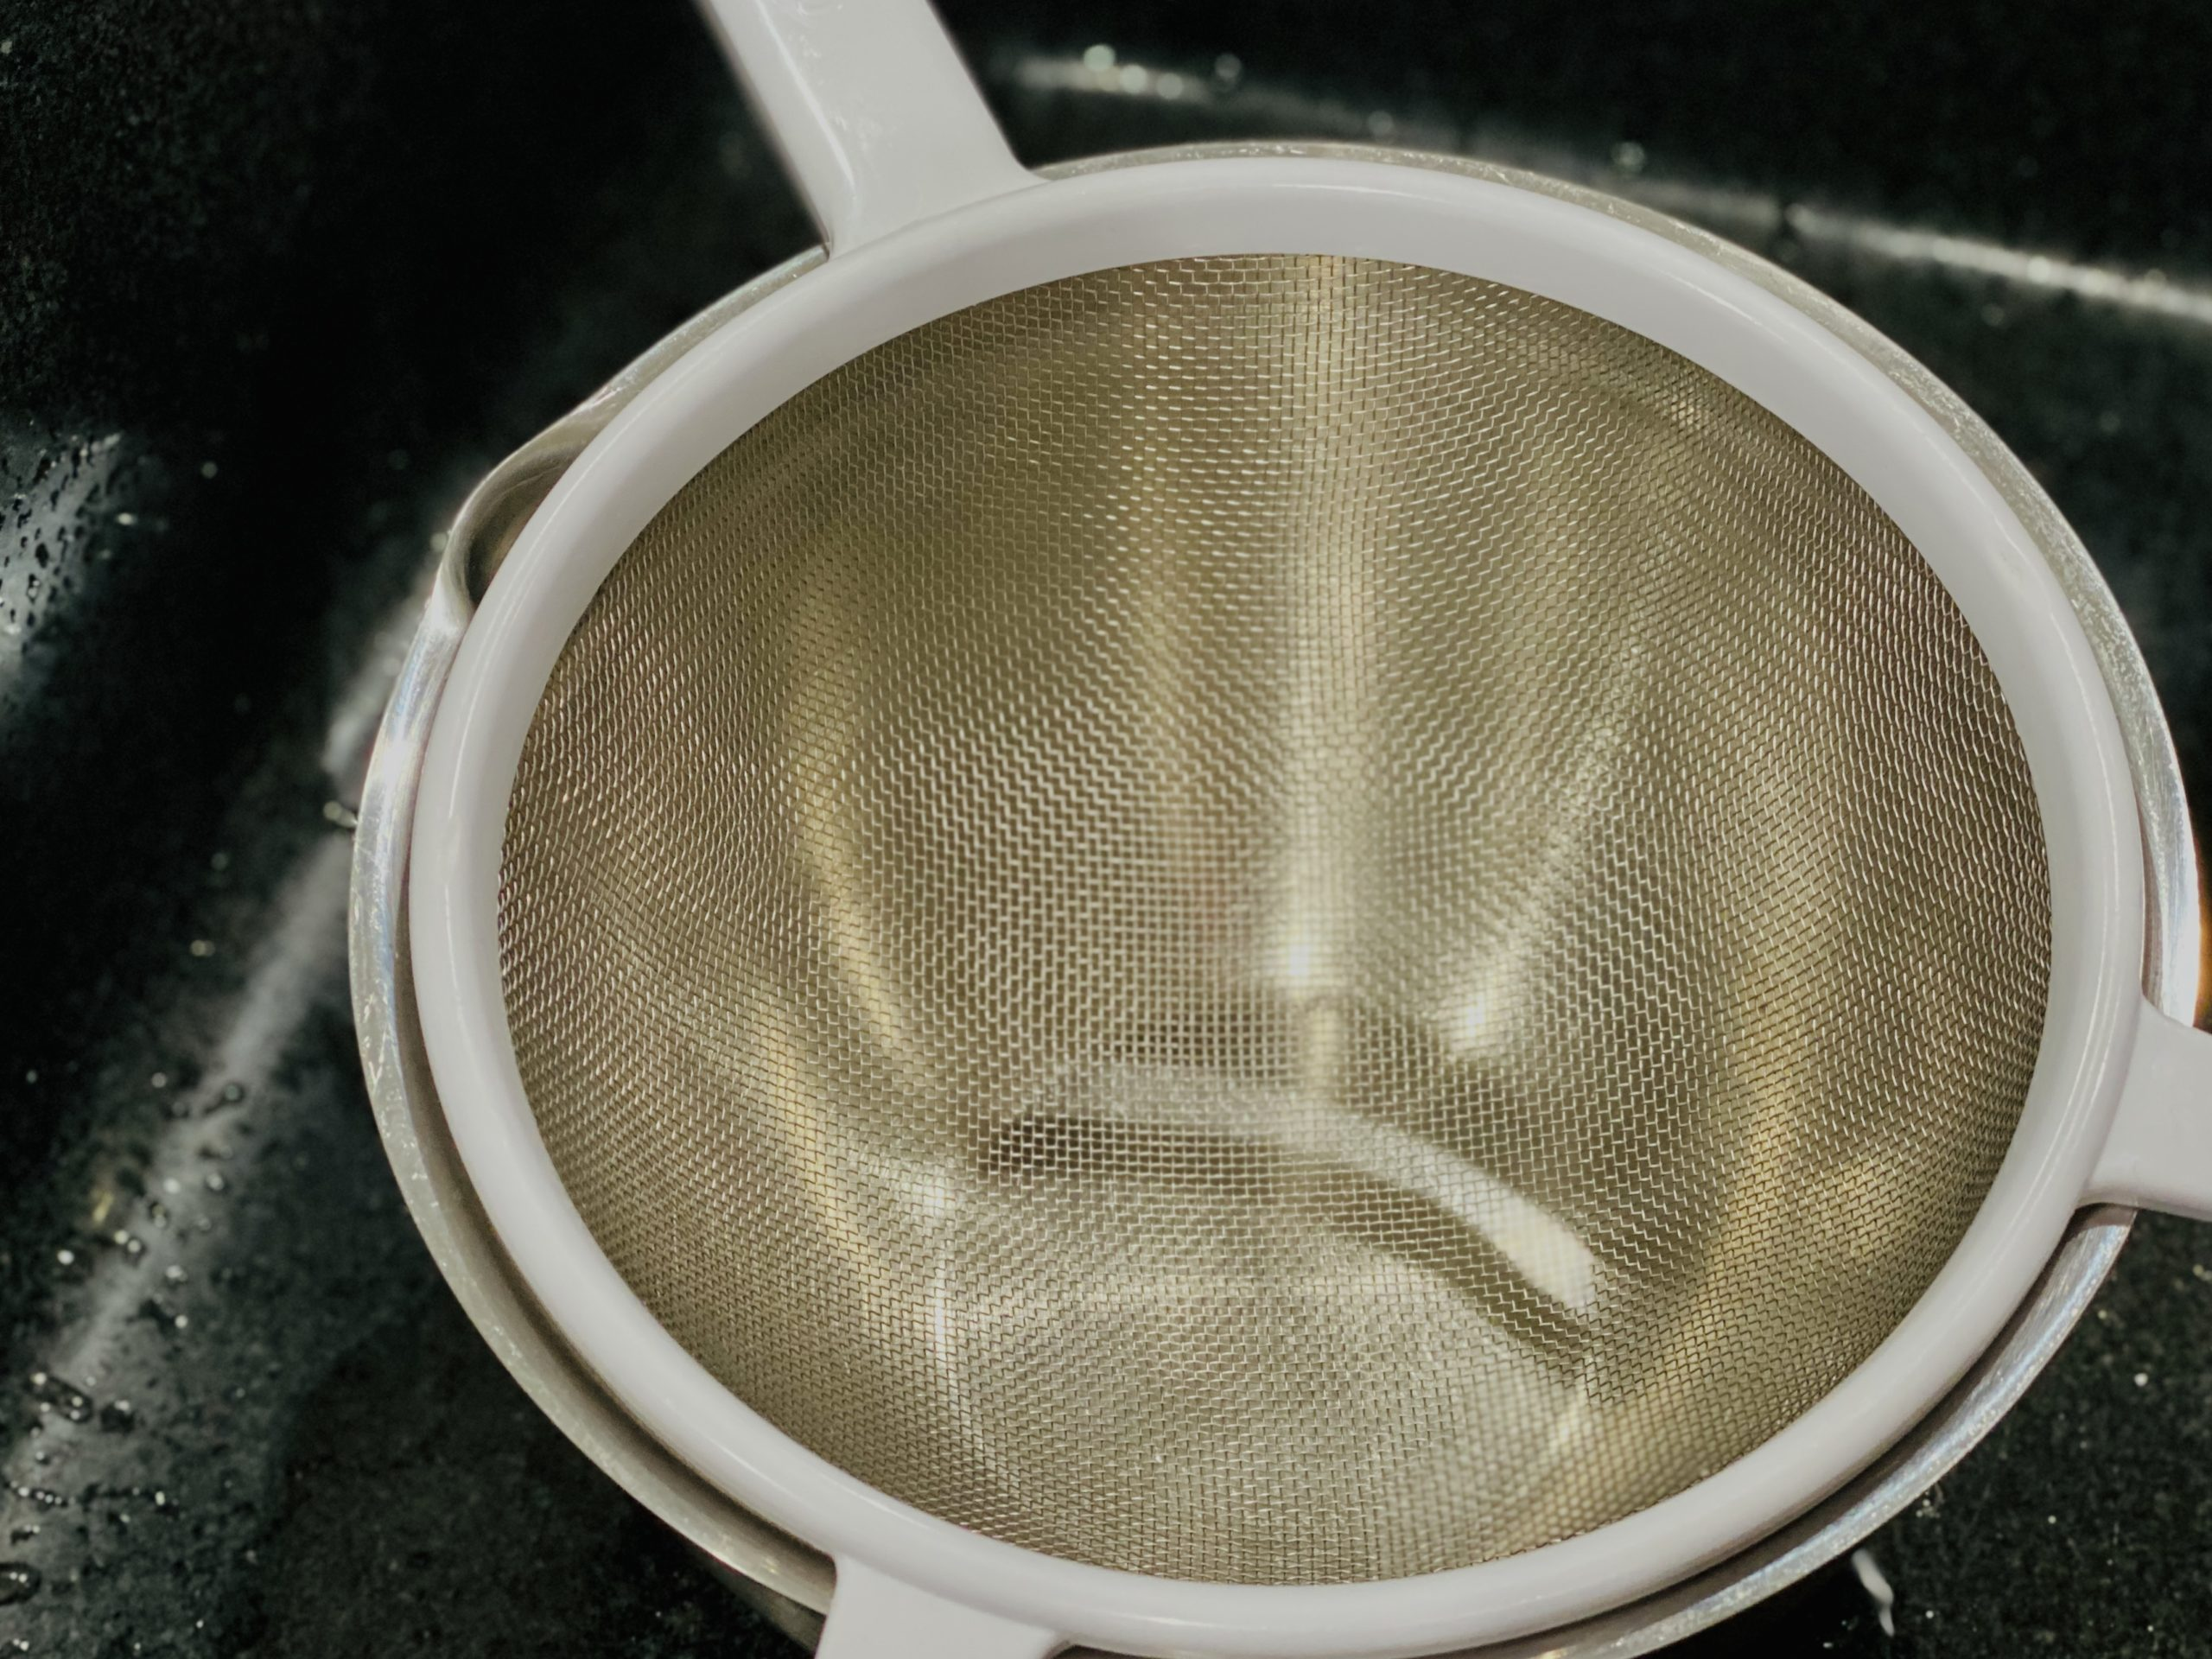 Strainer inside a bowl in a sink.